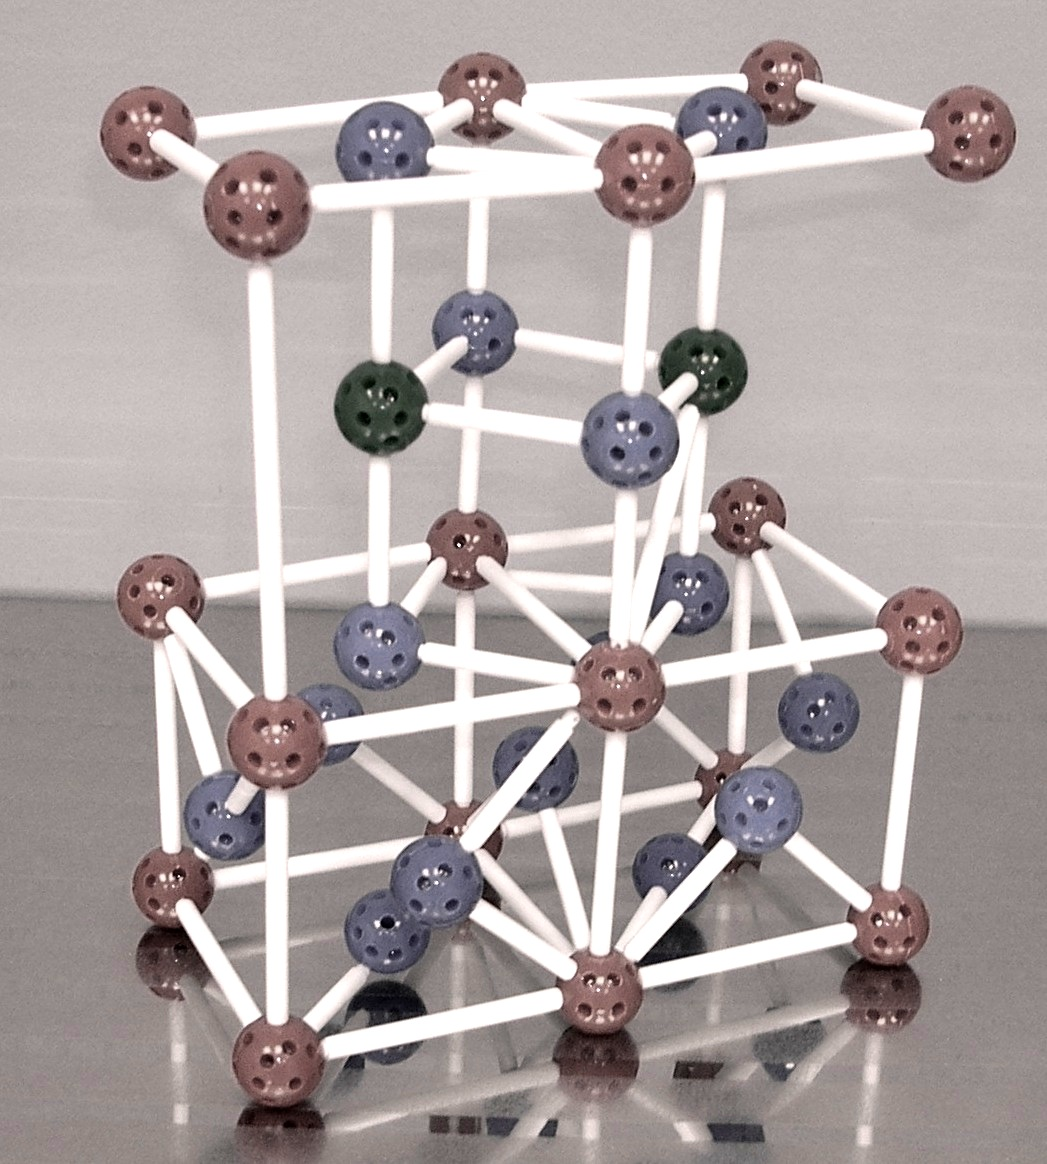 Model of crystallographic sytructure